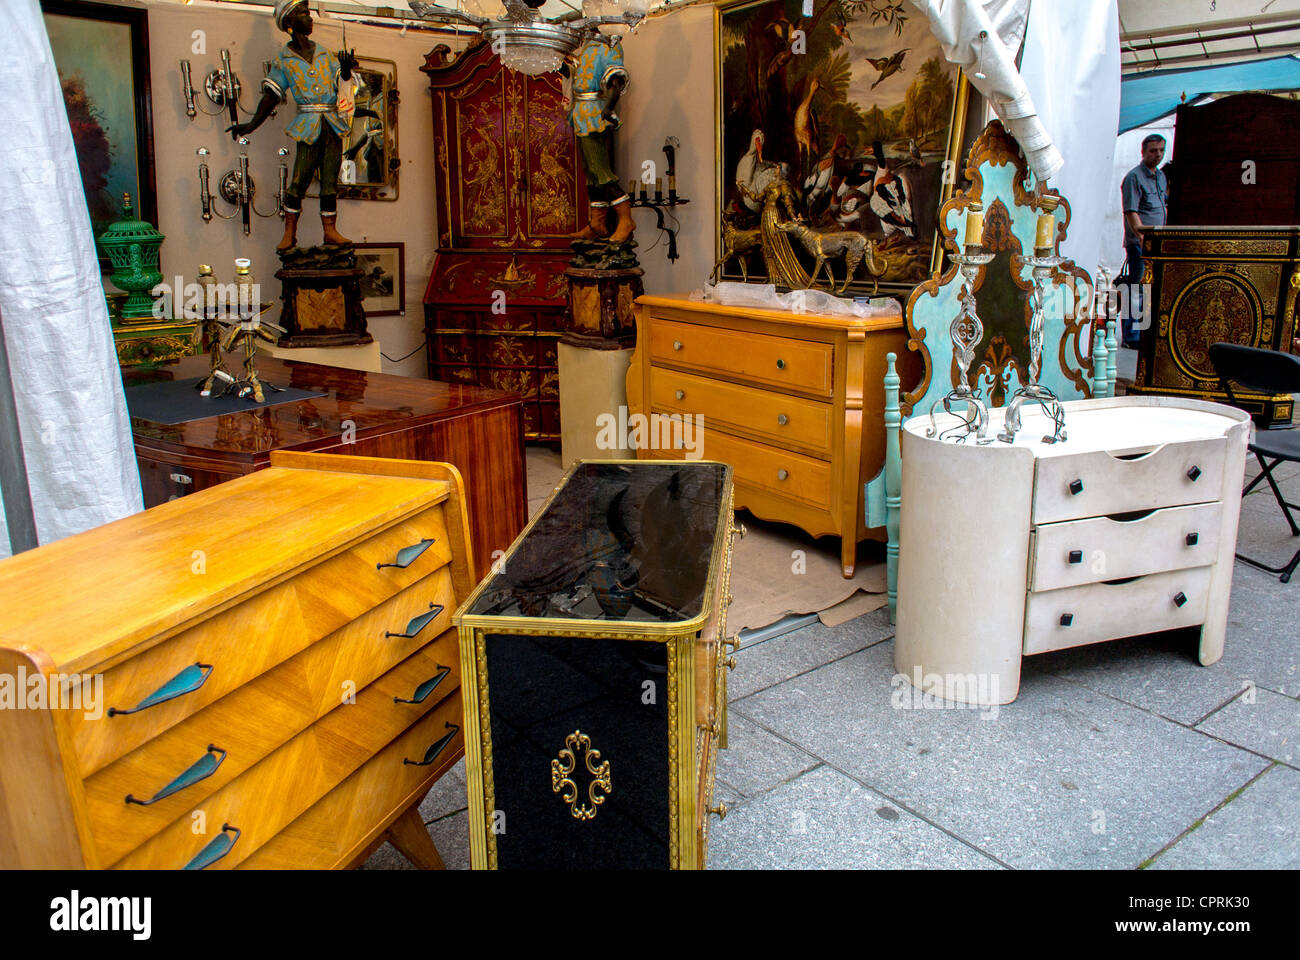 Paris, France, Public Markets, French Antiques, Furniture in Stalls - Stock  Image - French Antiques Furniture Stock Photos & French Antiques Furniture